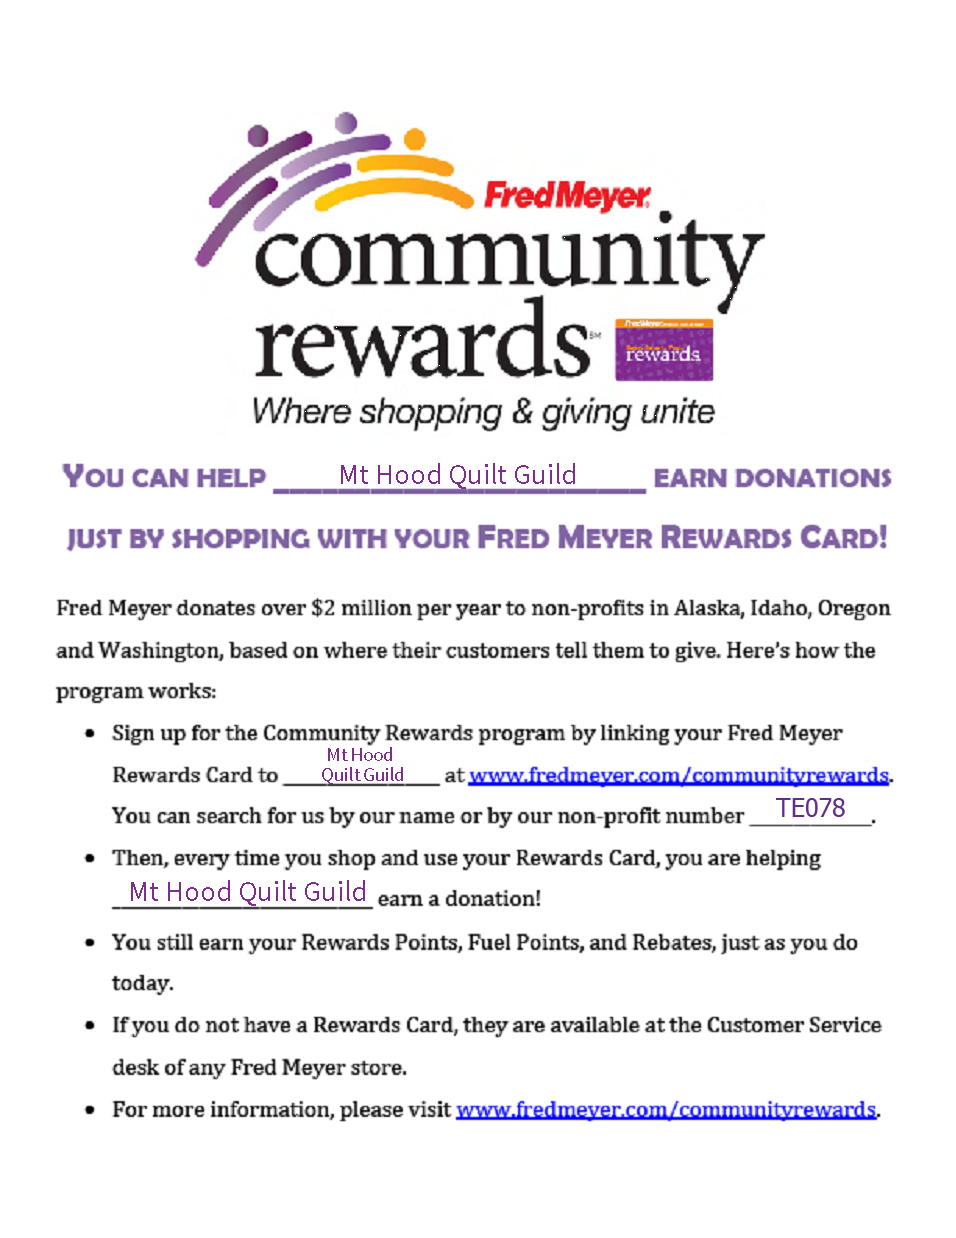 Fred Meyer Community Rewards flyer